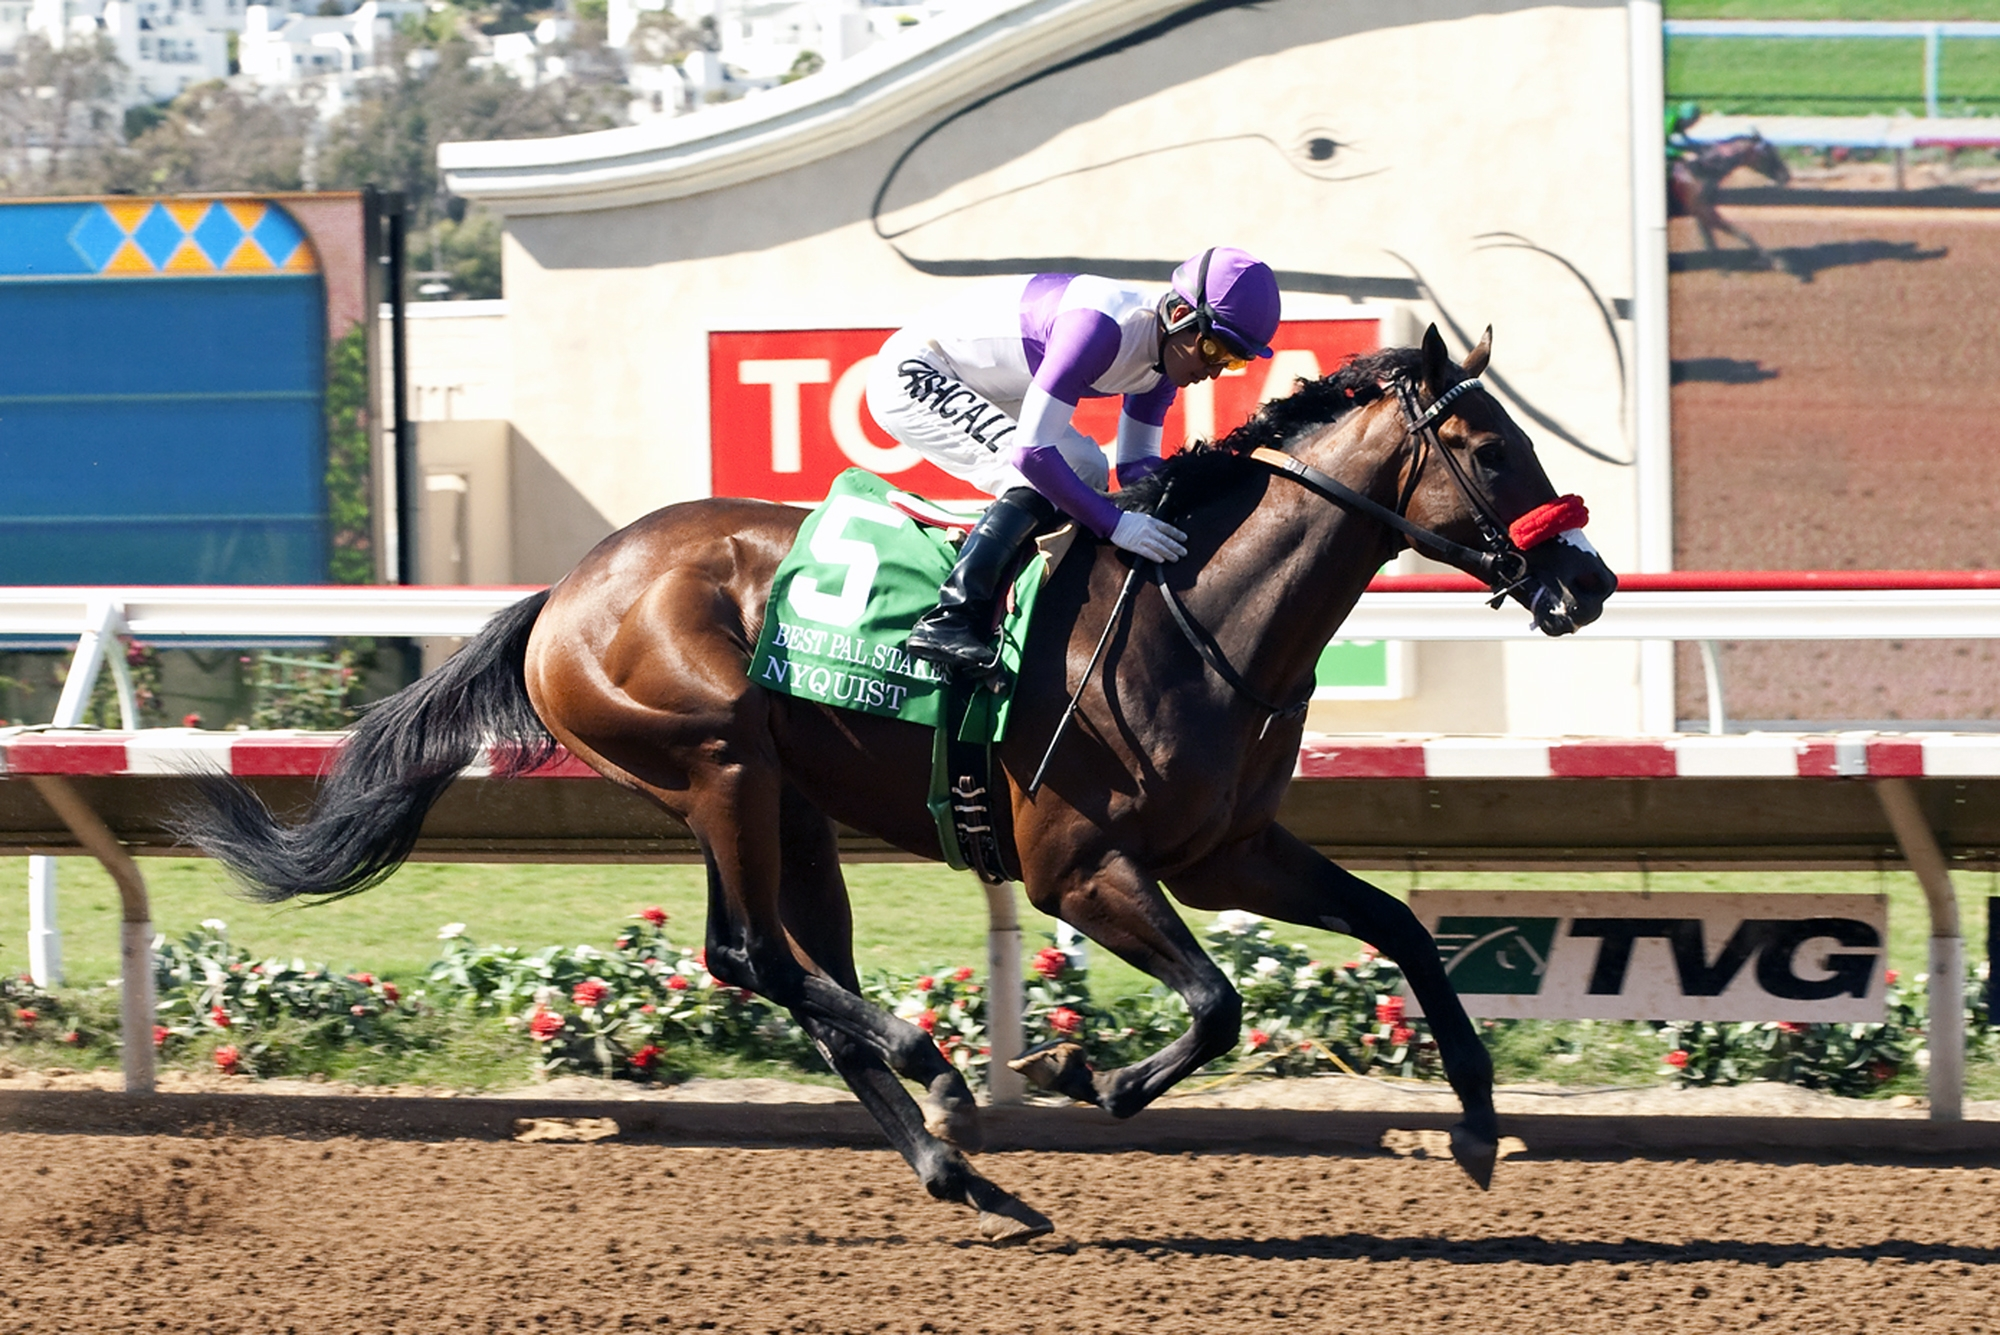 In this image provided by Benoit Photo, Nyquist, with Mario Gutierrez aboard, wins the Grade II, $200,000 Best Pal Stakes horse race Saturday, Aug. 8, 2015, at Del Mar Thoroughbred Club in Del Mar, Calif. (Benoit Photo via AP)